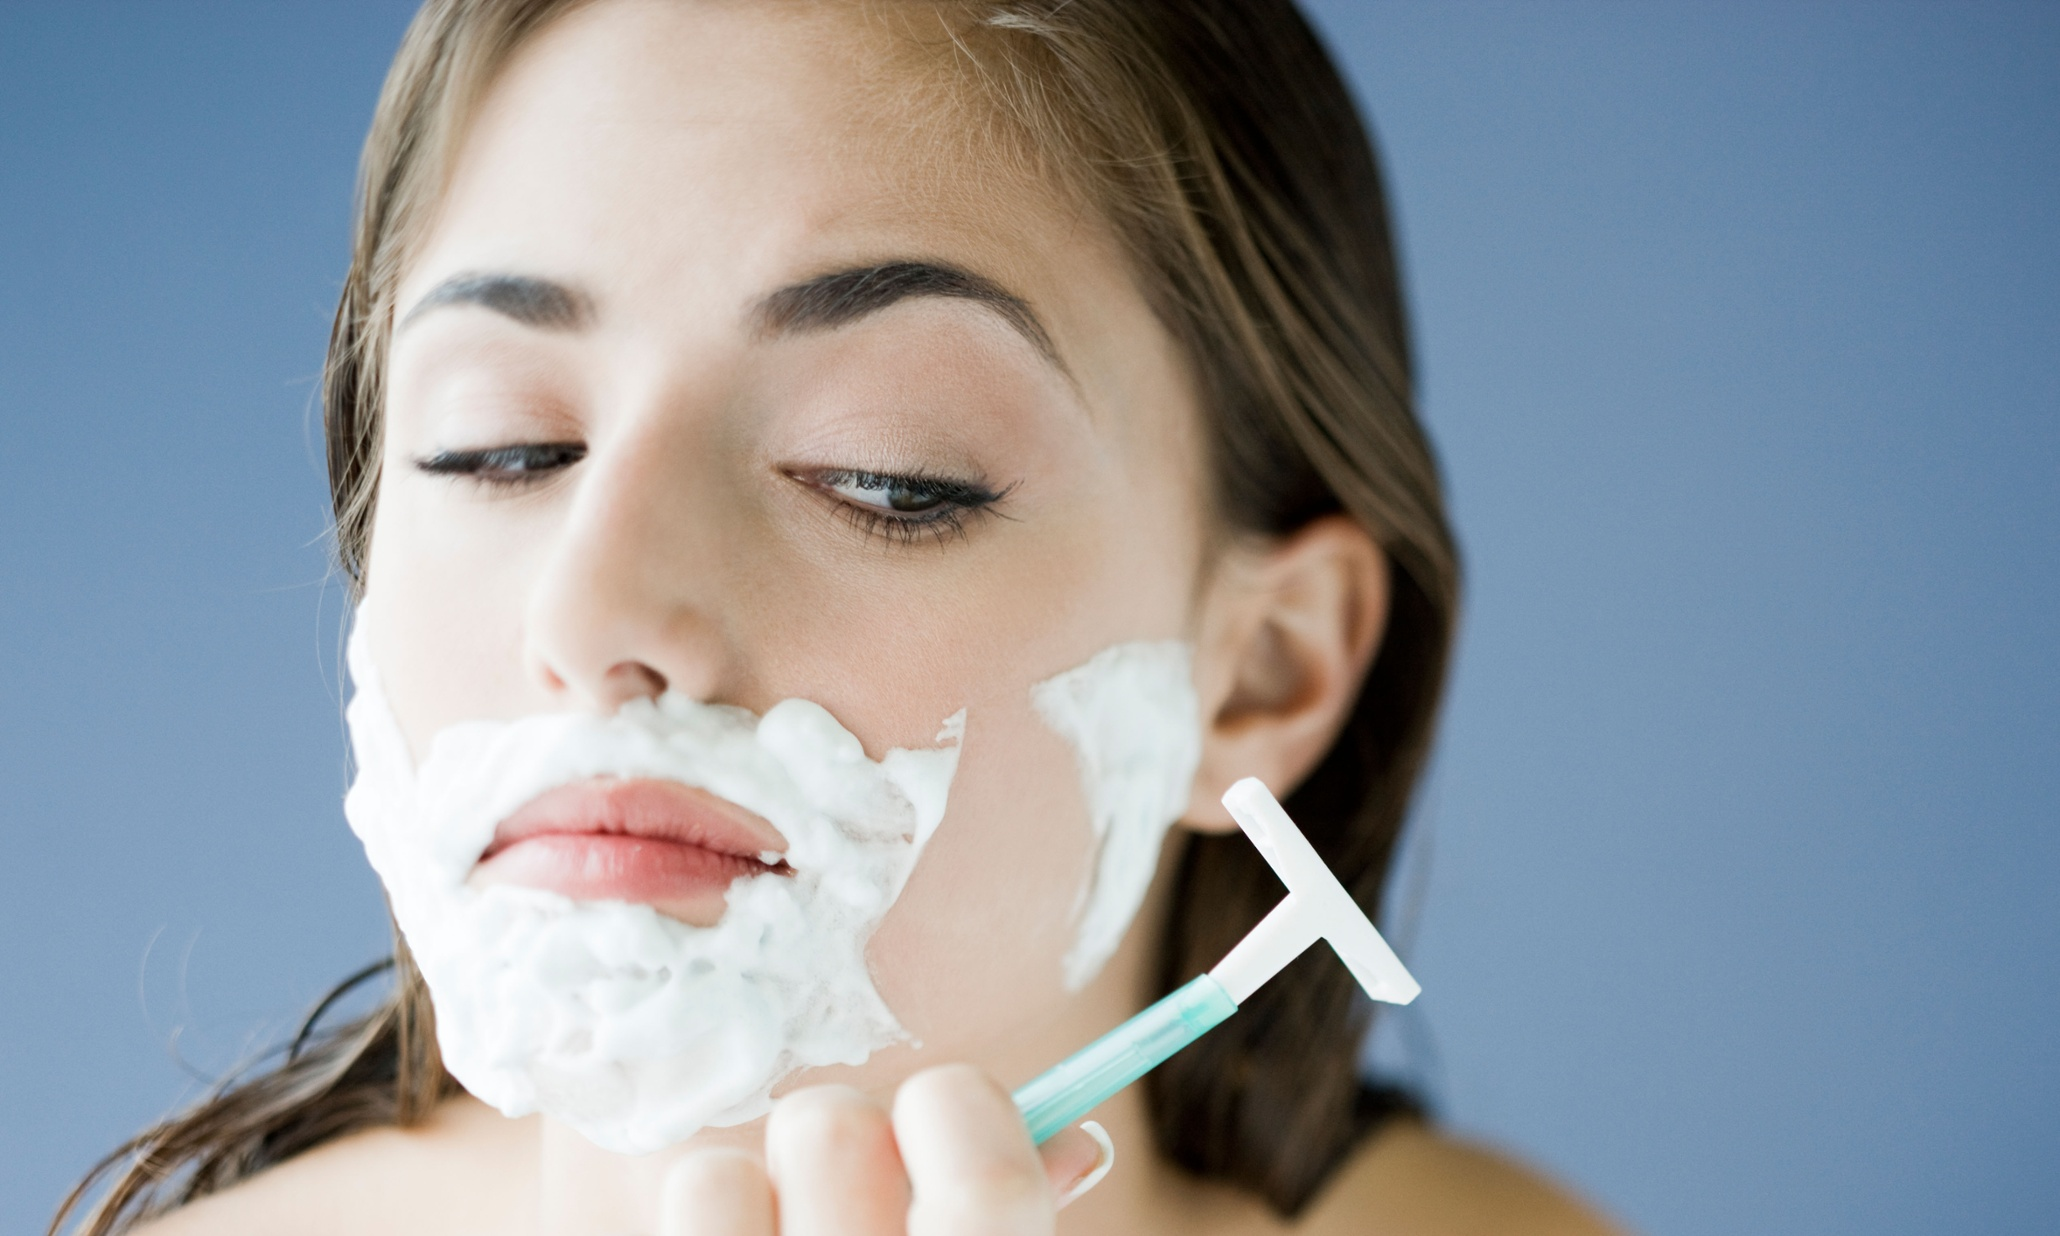 Why its a terrible idea for women to shave their faces